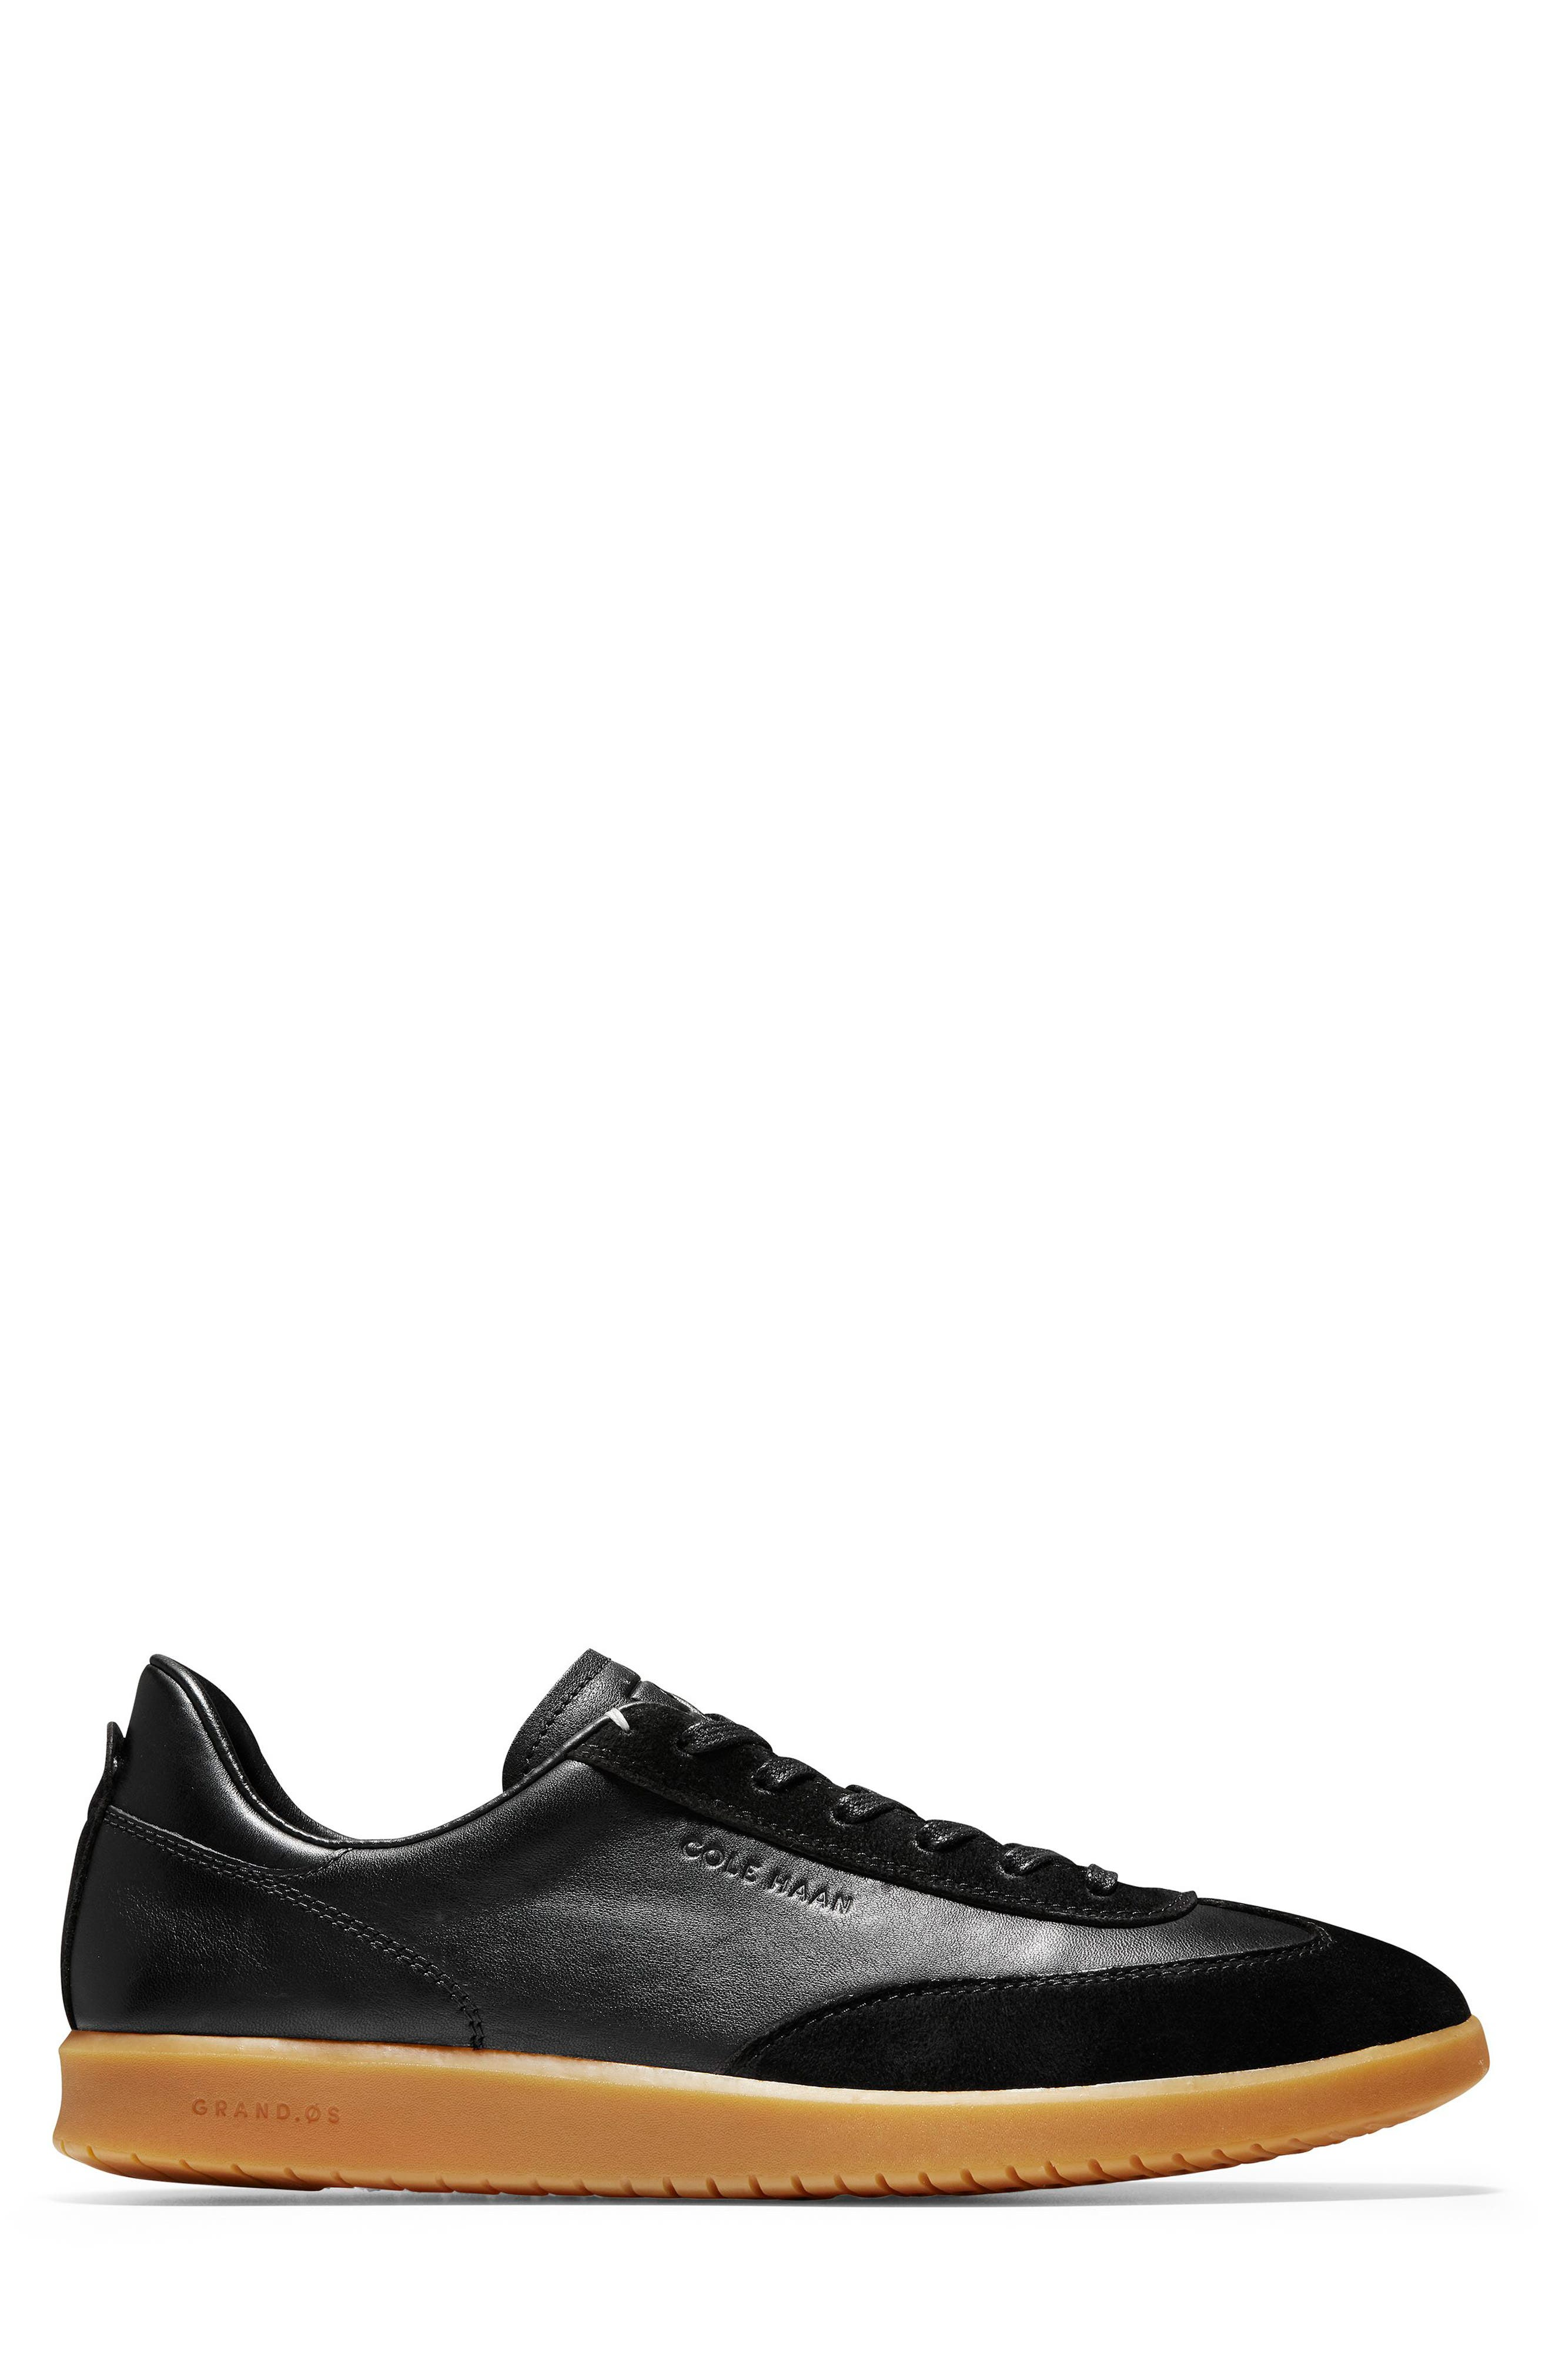 GrandPro Turf Sneaker,                             Alternate thumbnail 3, color,                             BLACK LEATHER/ SUEDE